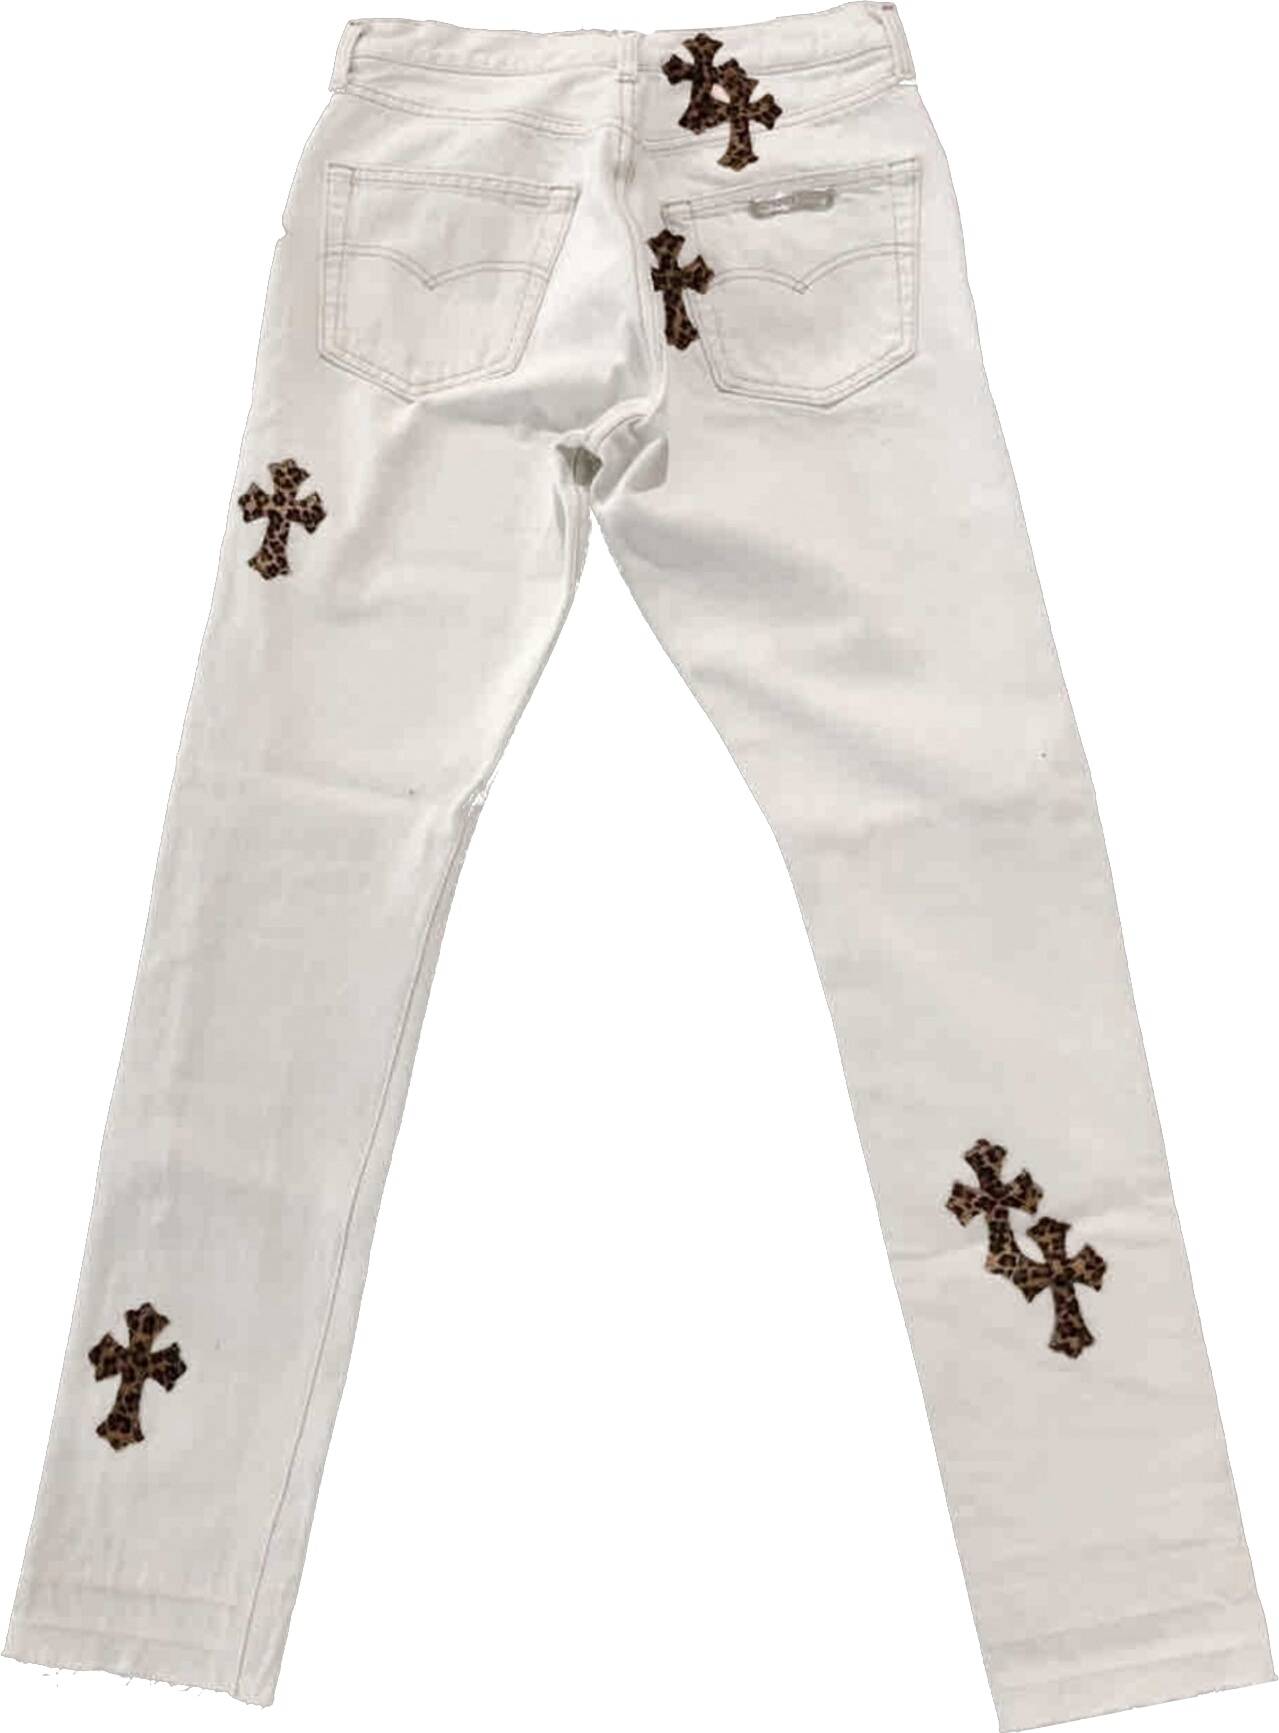 Chrome Hearts Leopard Patch Whtie Jeans